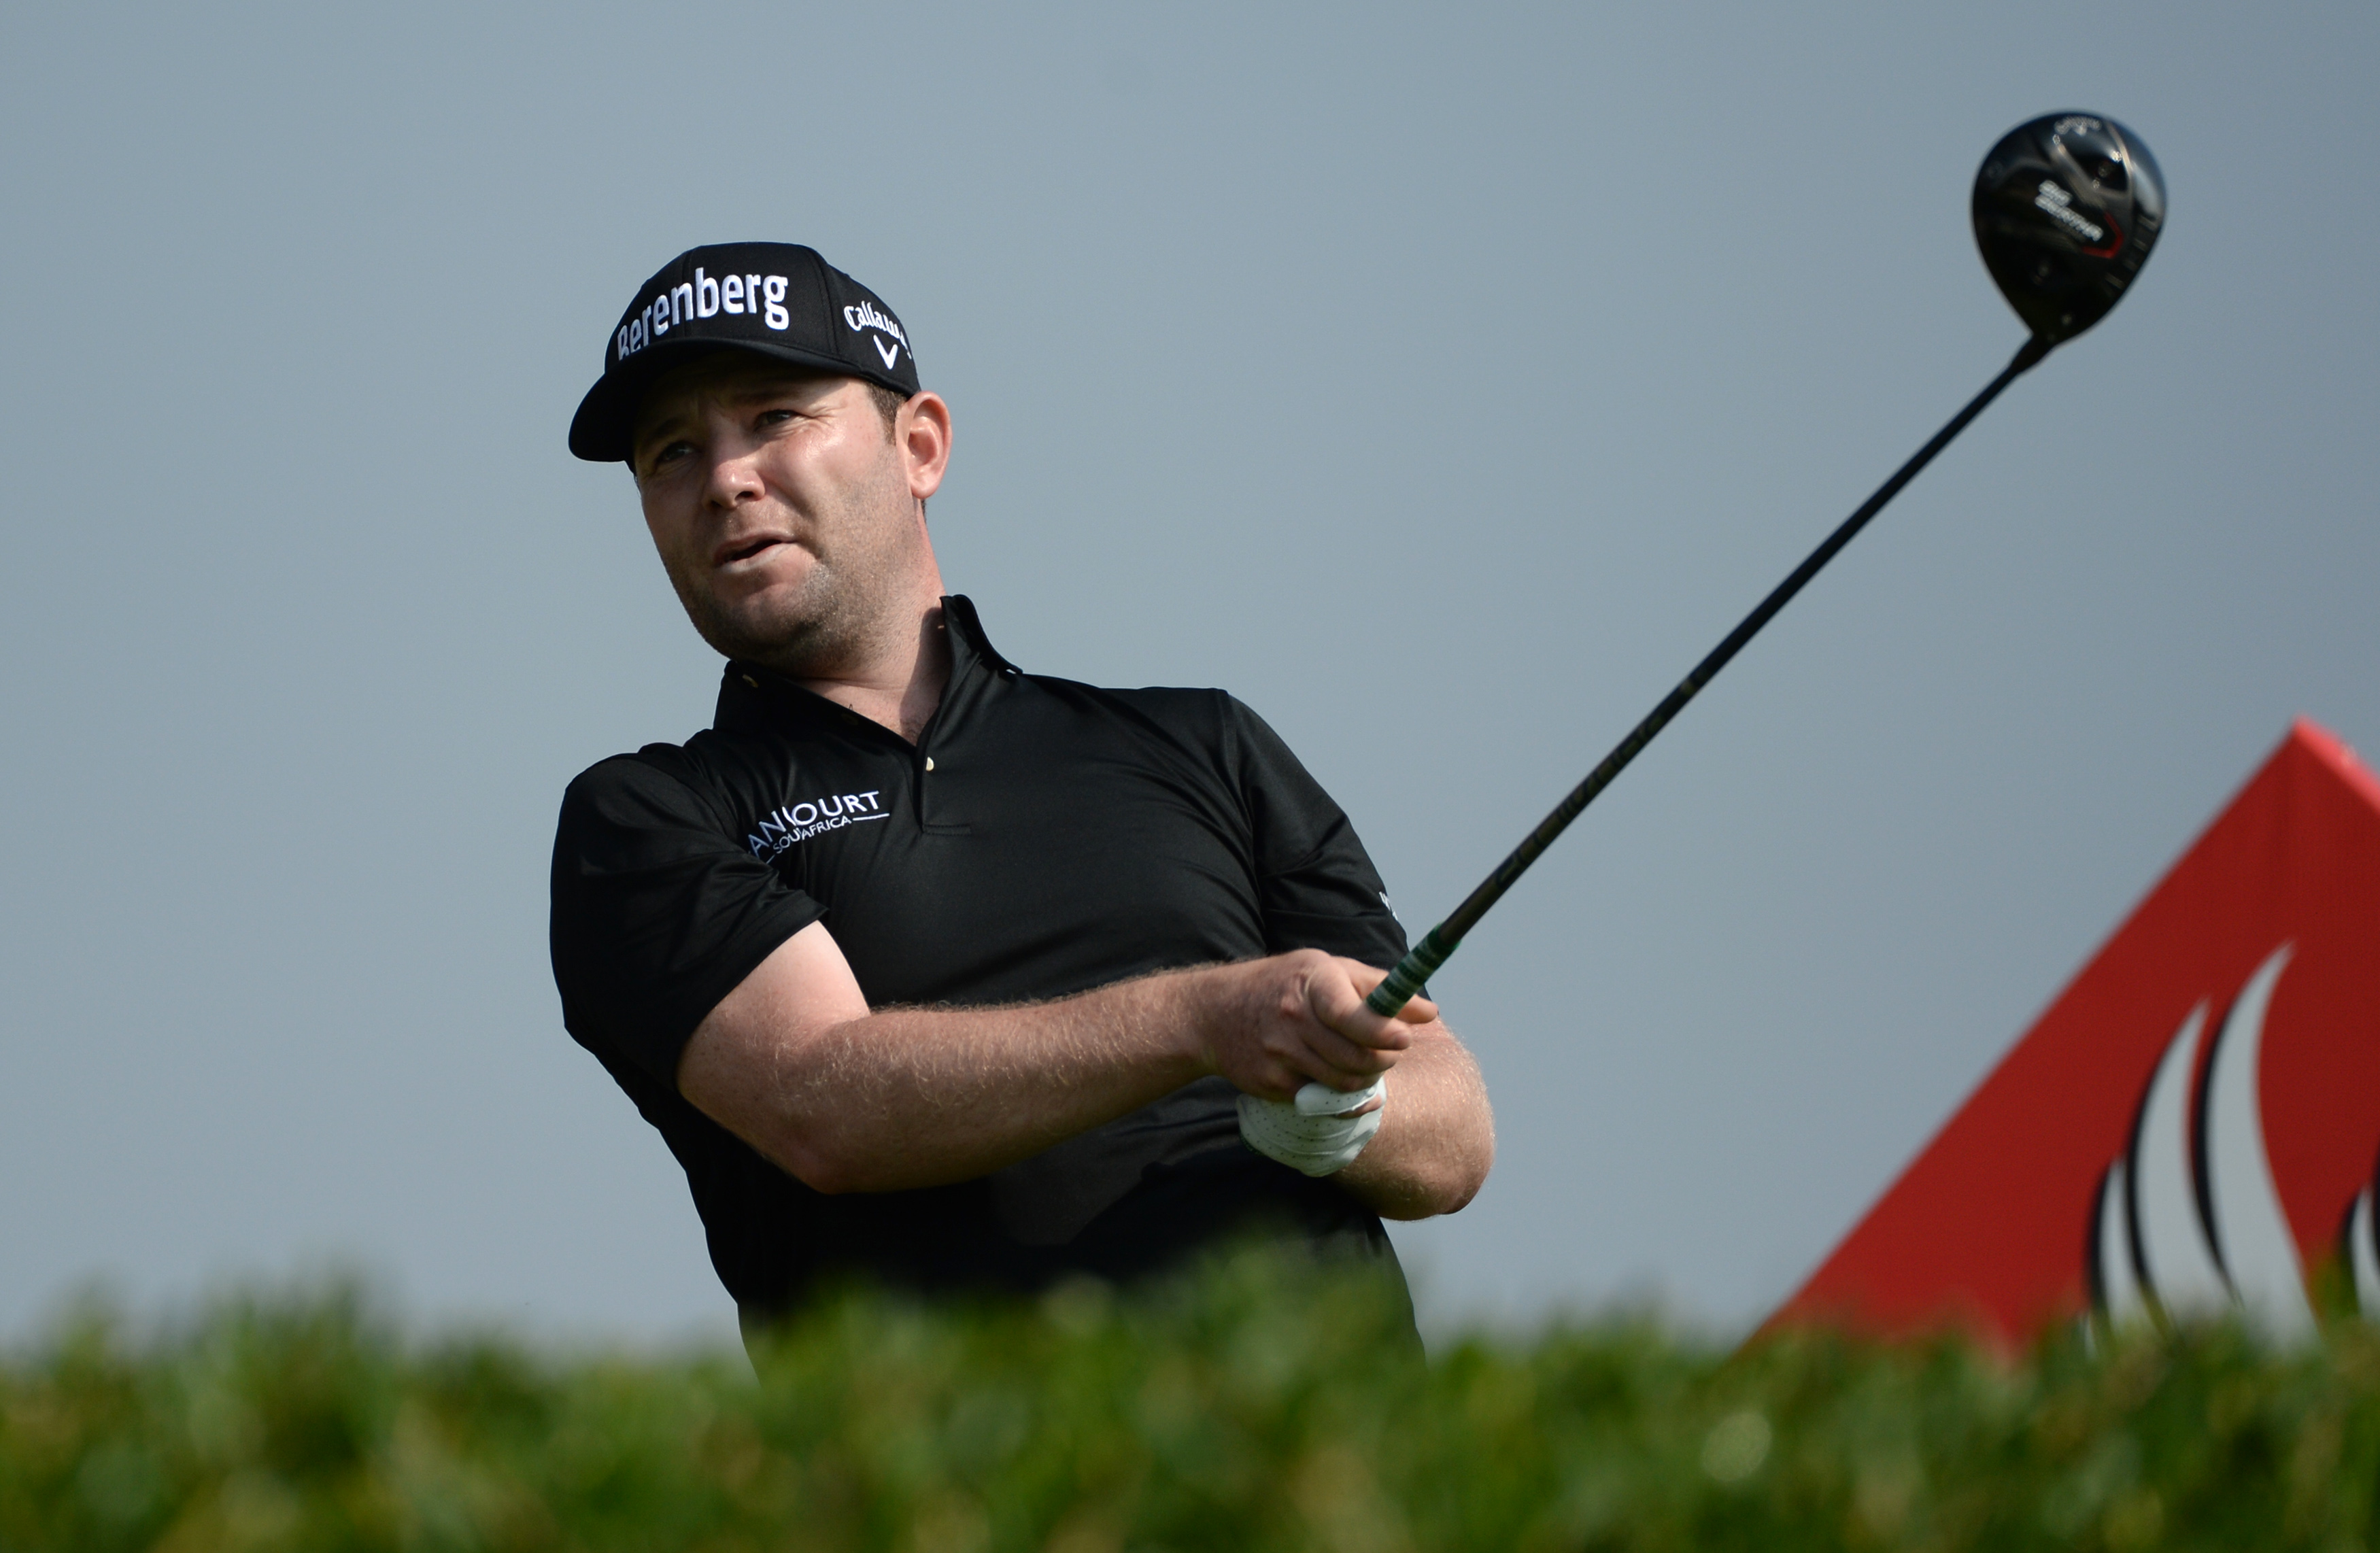 Branden Grace of South Africa watches the ball after the tee off at the 11th hole during the second round of the Abu Dhabi HSBC Golf Championship in Abu Dhabi, United Arab Emirates, Friday, Jan. 22, 2016. (AP Photo/Martin Dokoupil)